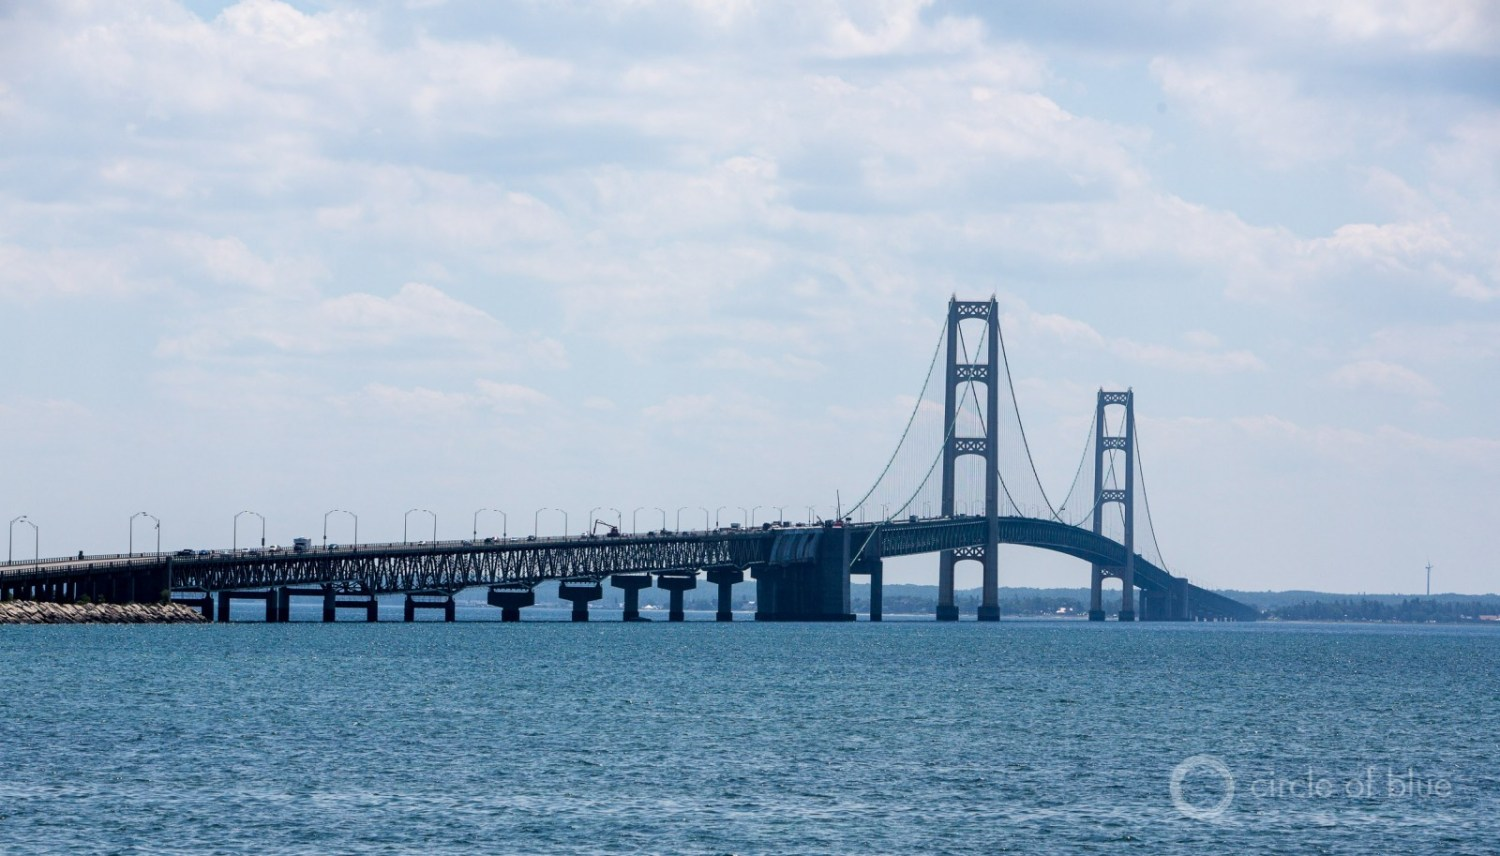 """The """"Pure Michigan"""" brand has been damaged in recent years by a big inland oil spill, lead-poisoned drinking water in Flint, and a 63-year-old oil pipeline under the Straits of Mackinac. It is unclear if aquaculture will be allowed in the state's Great Lakes waters. Photo © J. Carl Ganter / Circle of Blue"""